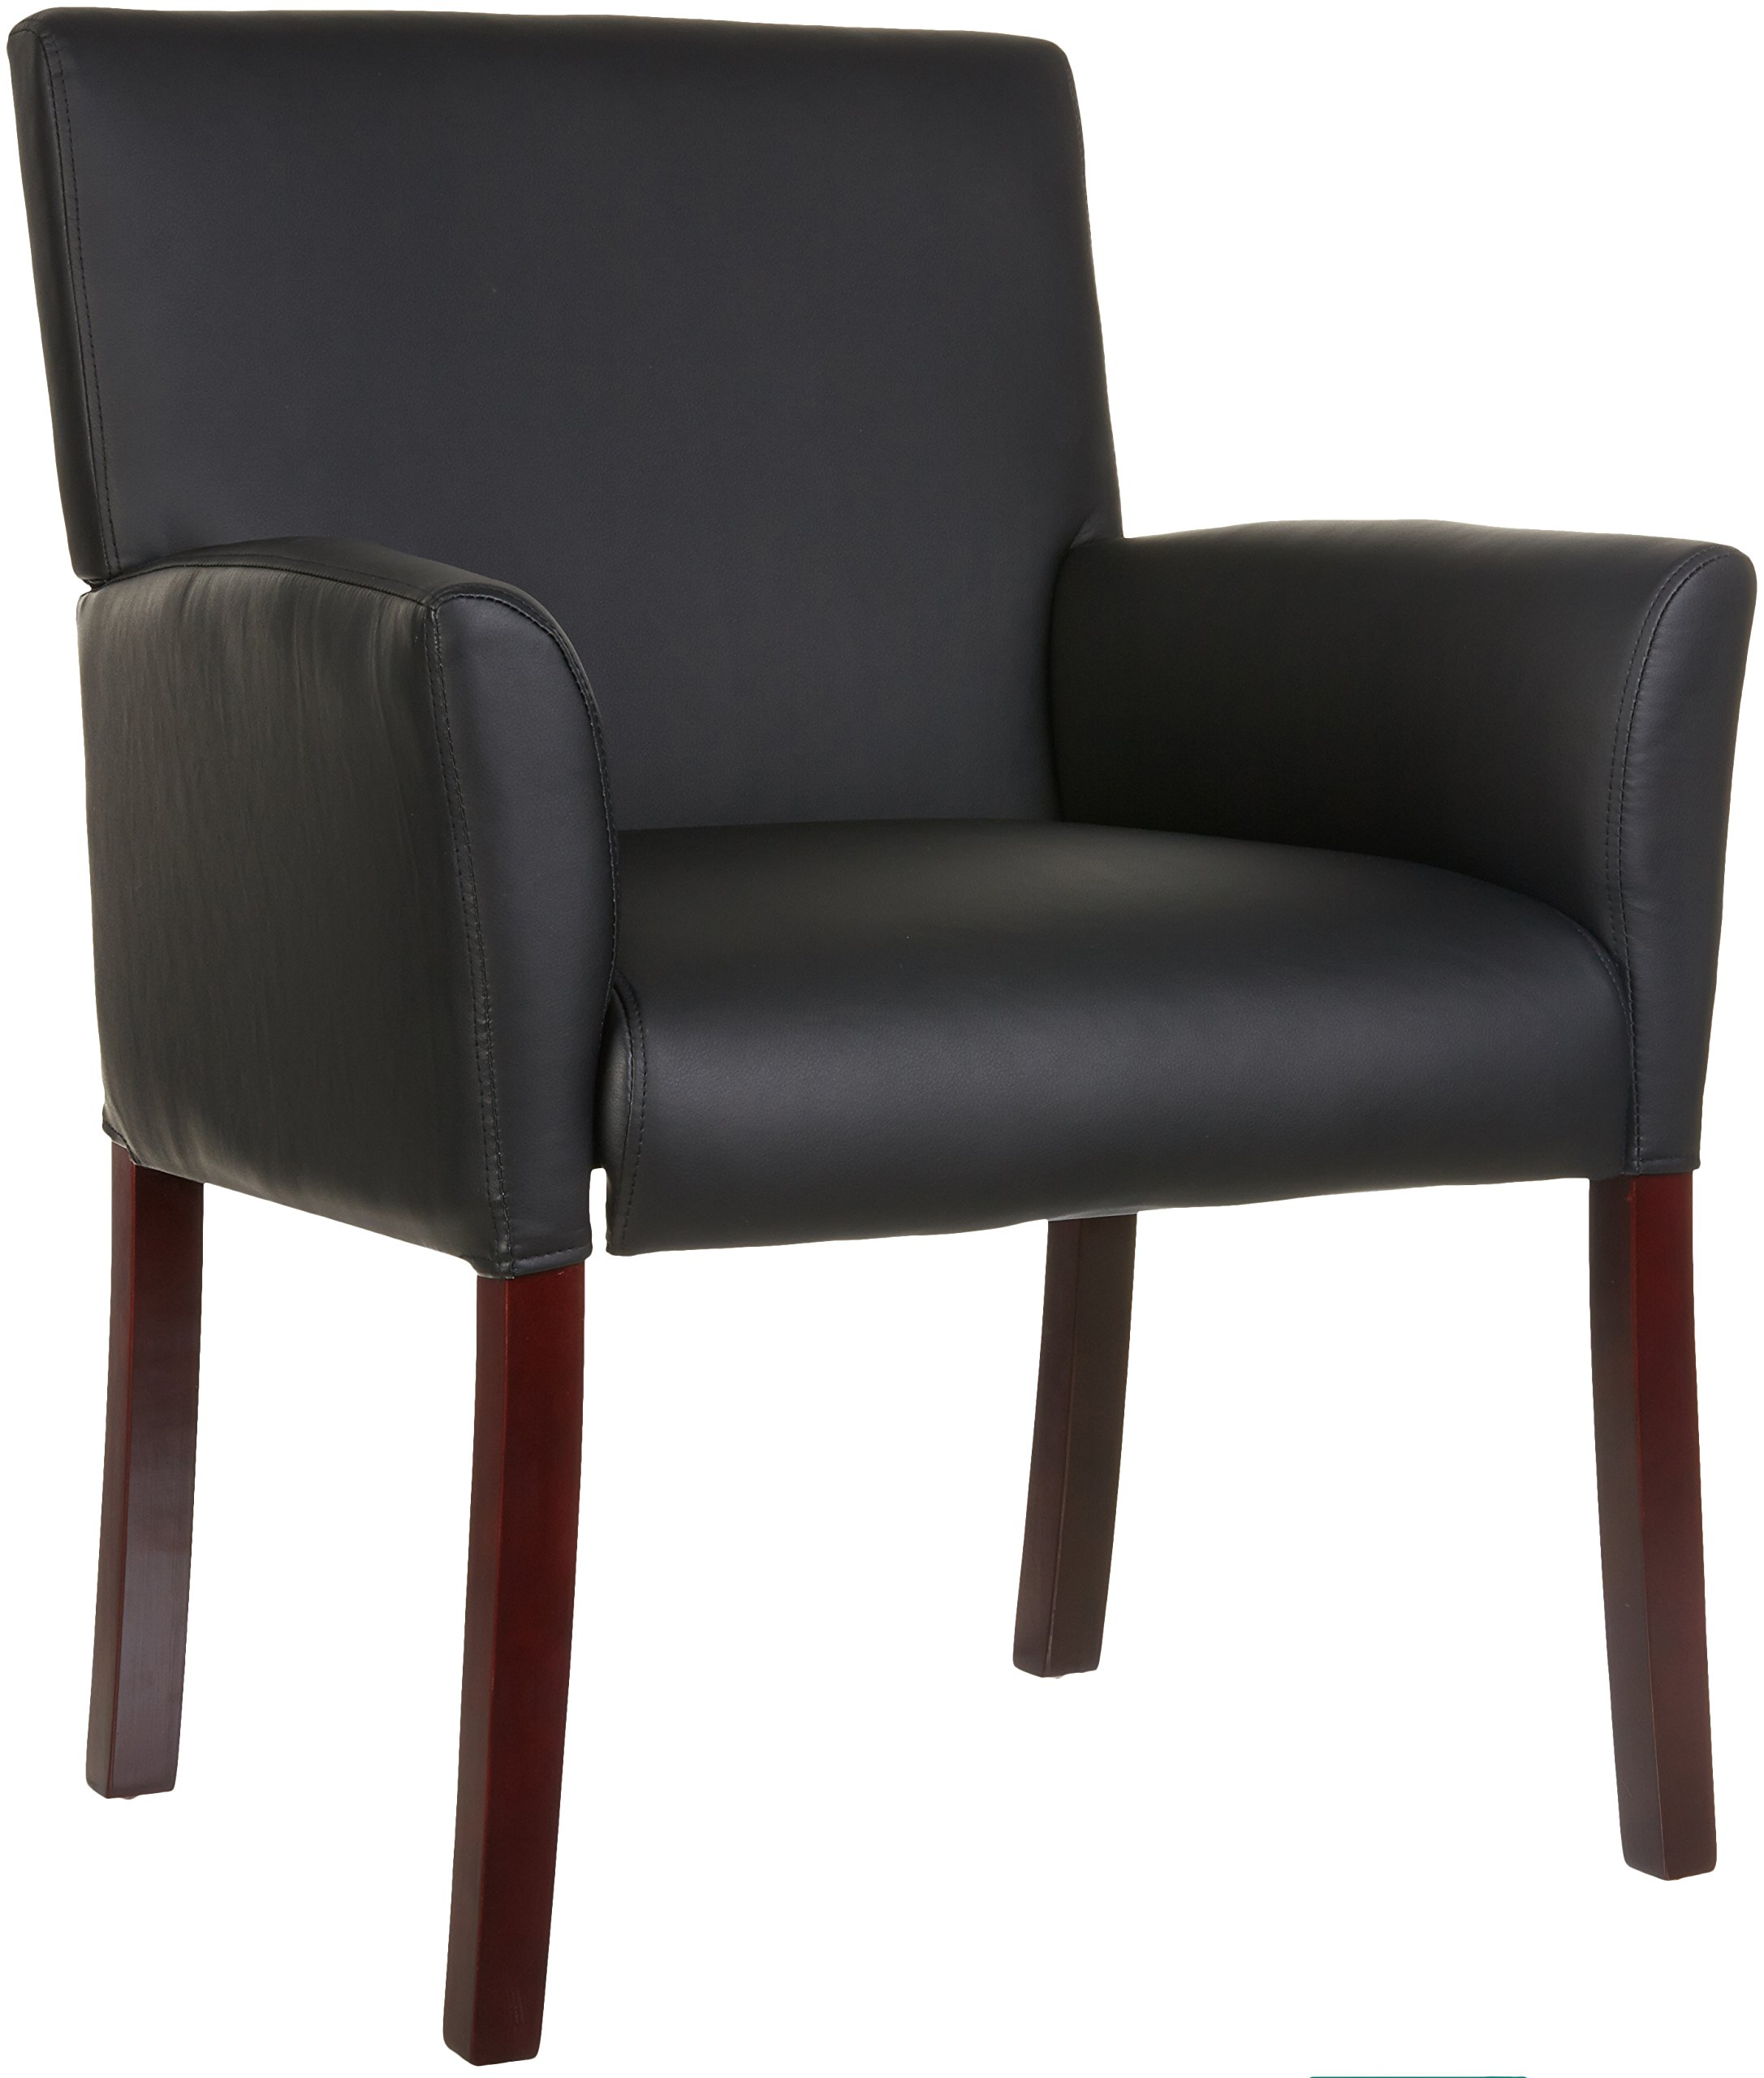 AmazonBasics Reception Chair, Black